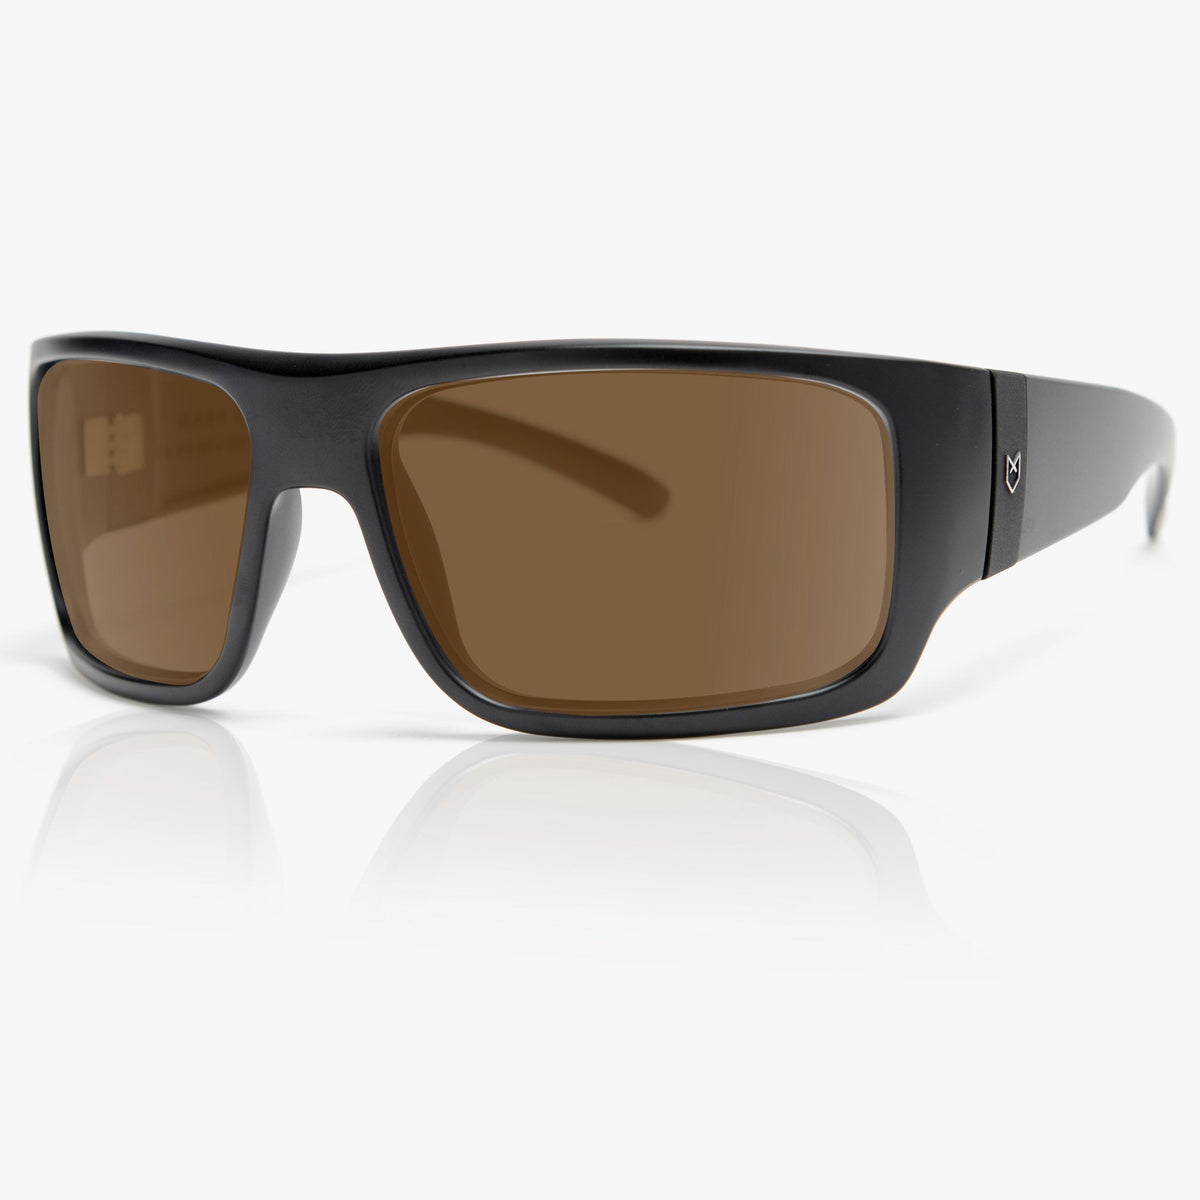 Manic Polarized Sunglasses for Men  6c684fd8e84